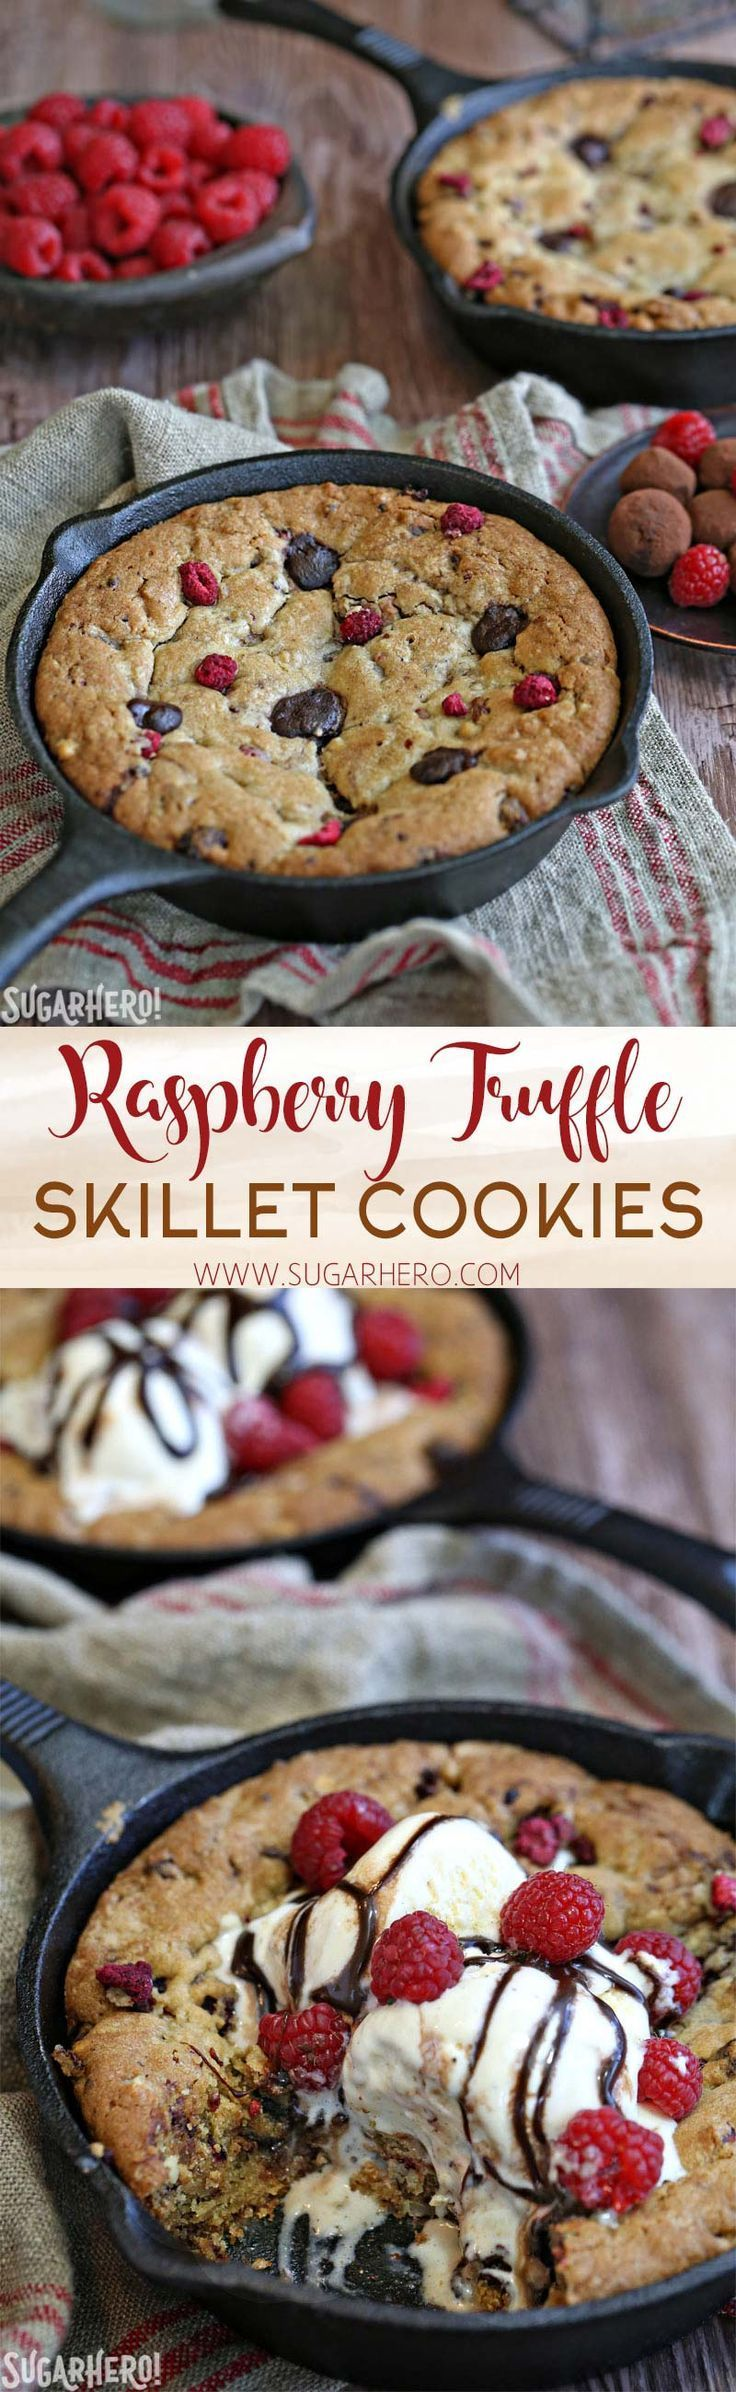 Raspberry Truffle Skillet Cookies - packed with gooey chocolate truffles, raspberries, and nuts! | From http://SugarHero.com